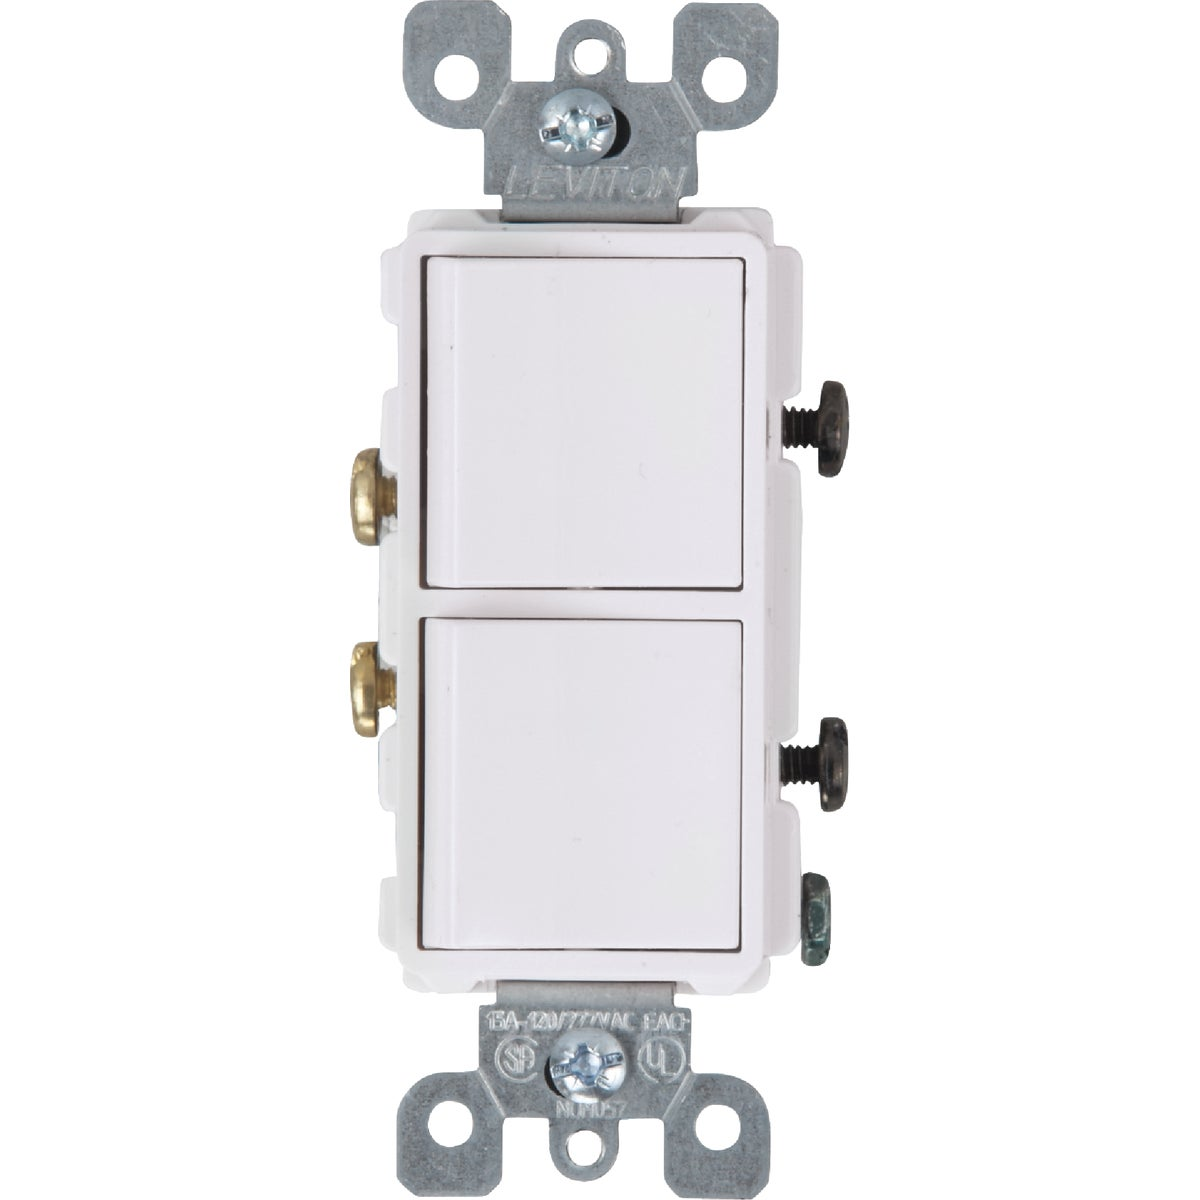 WHT DUPLEX SWITCH - R62-5634-WS by Leviton Mfg Co